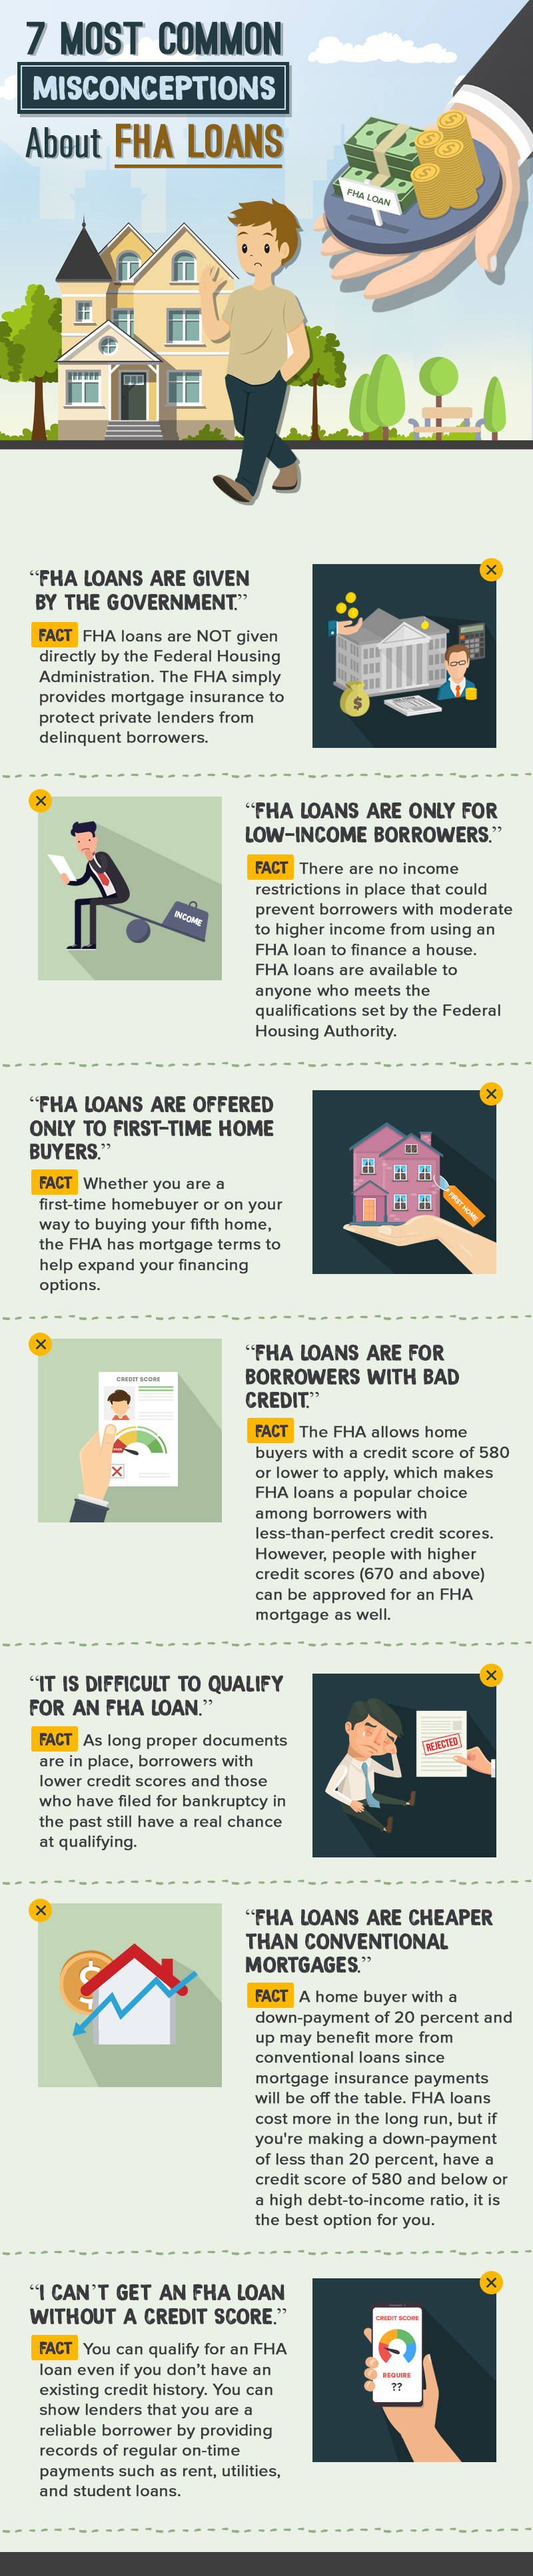 7 Misconceptions That Hinder People From Getting An FHA Loan.jpg